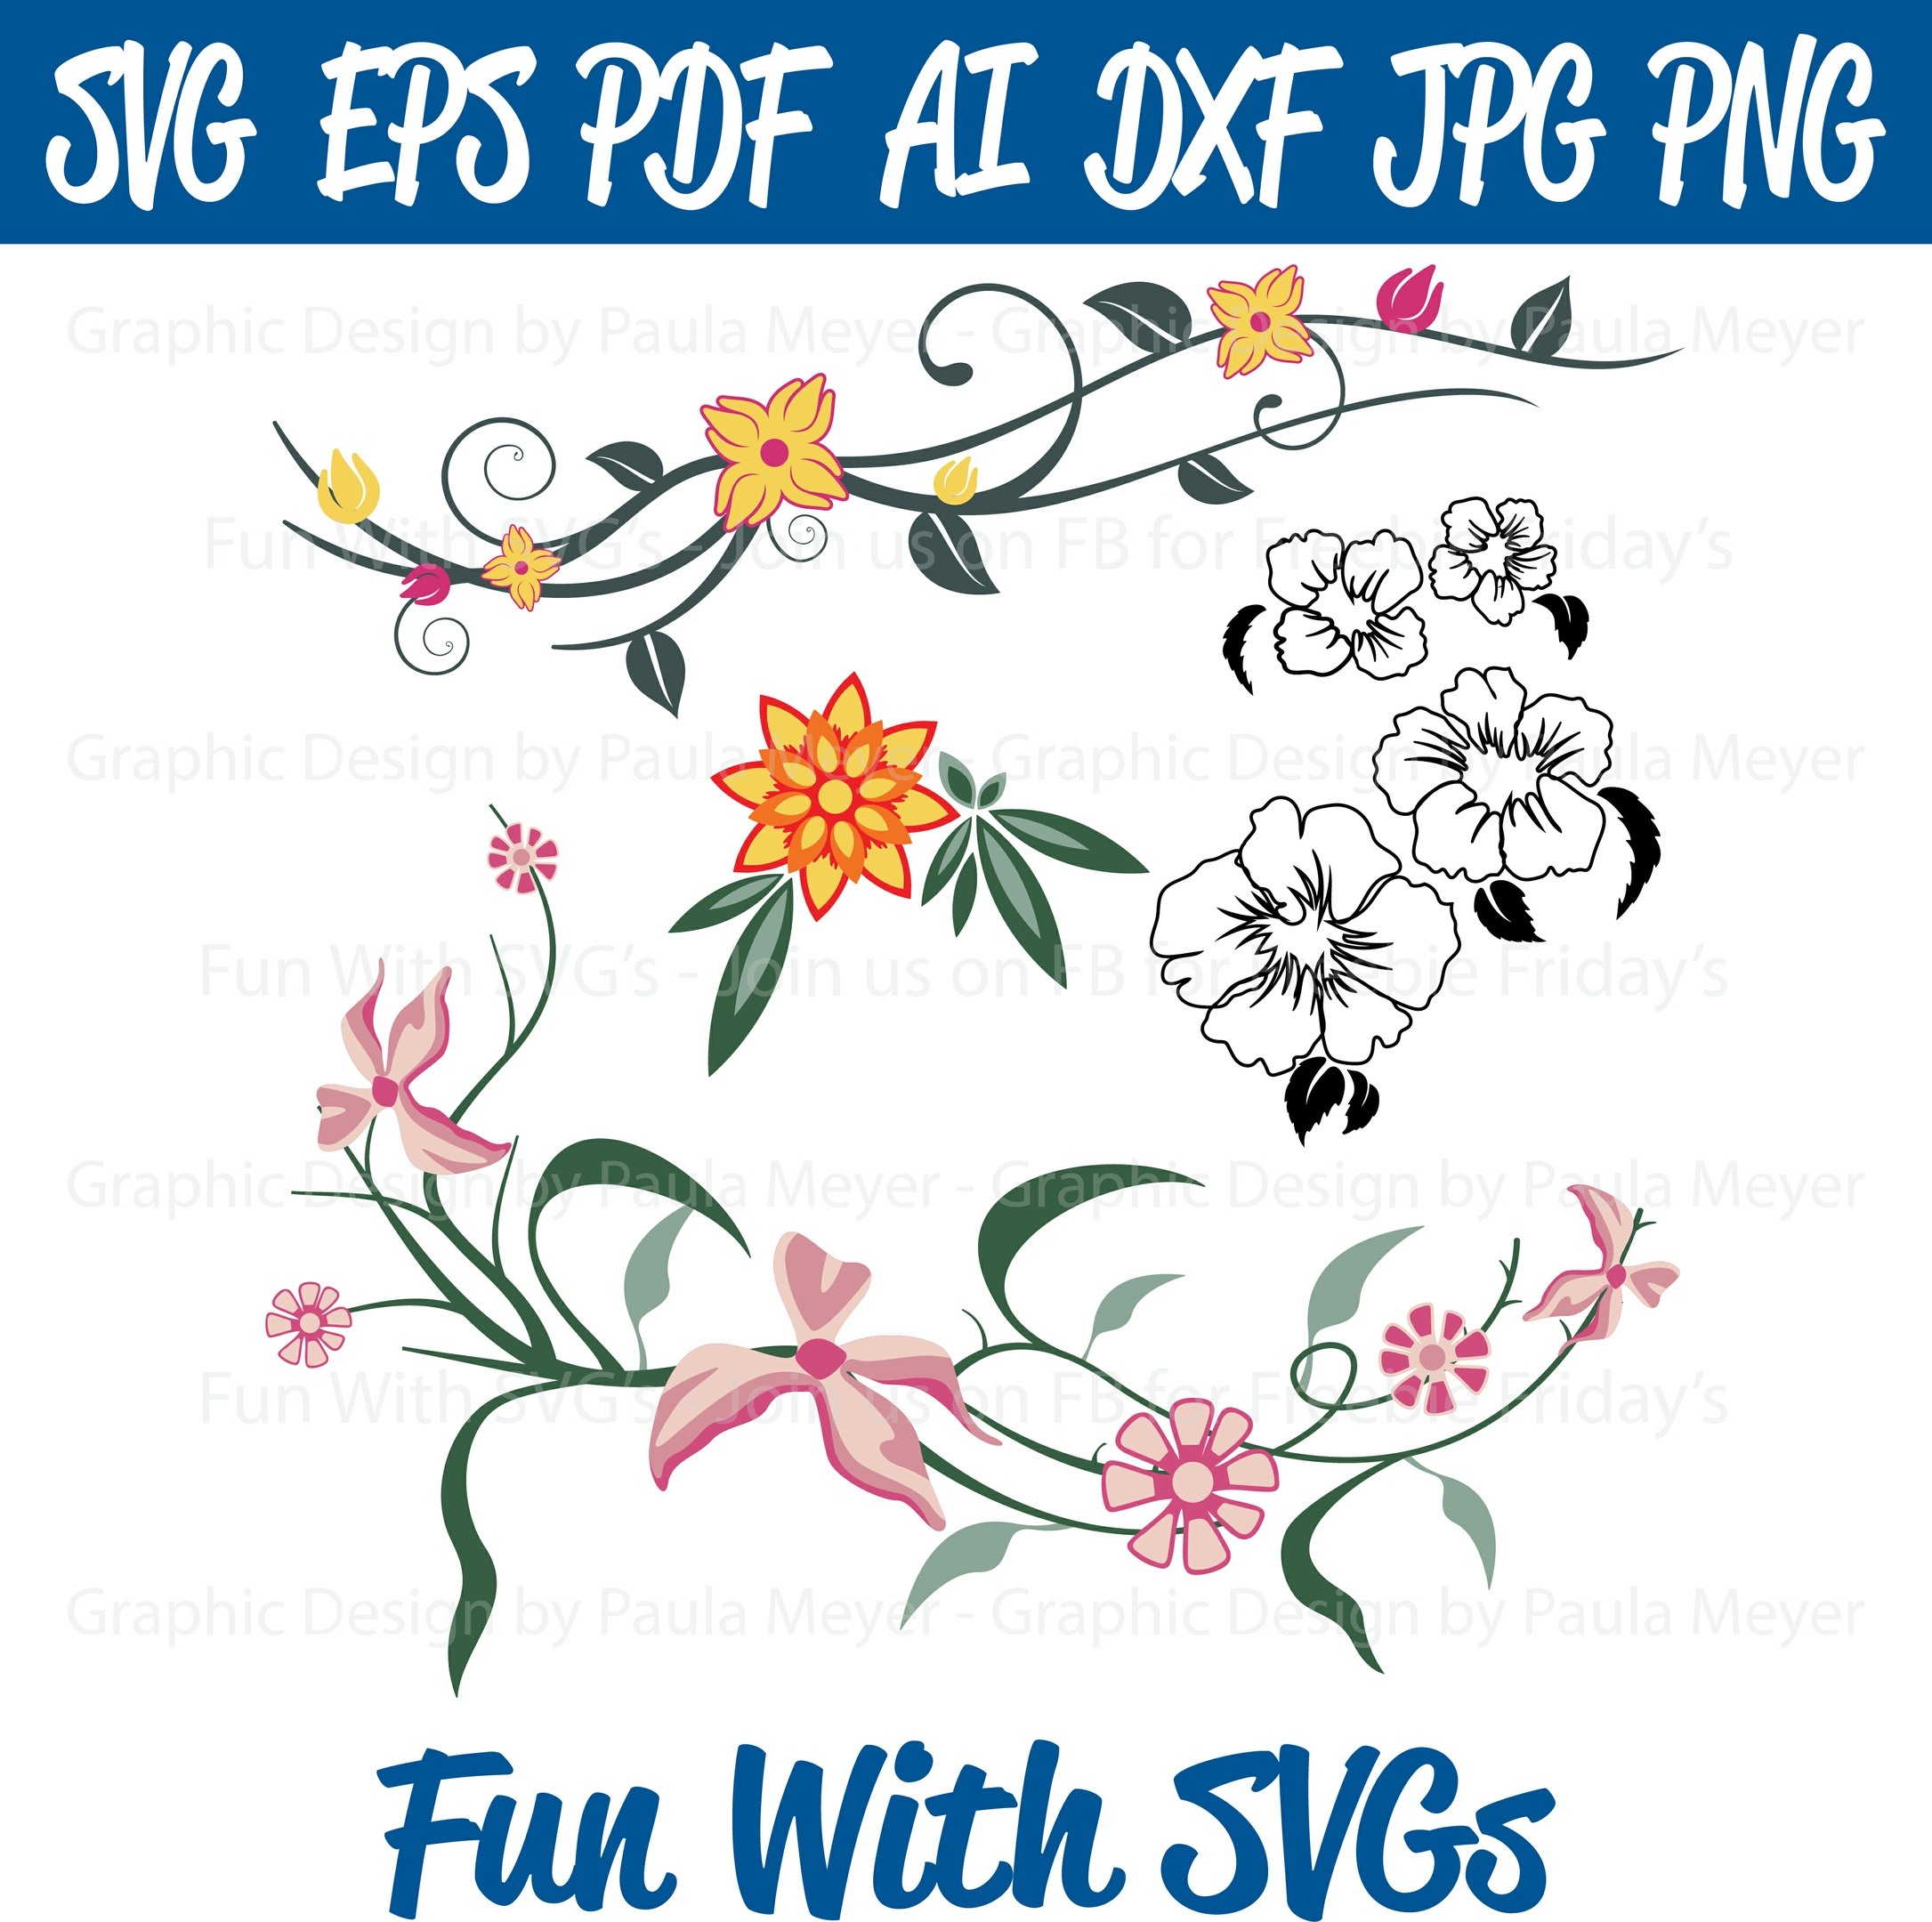 Spring Flower Collection - SVG Cut File, High Resolution Printable Graphics and Editable Vector Art